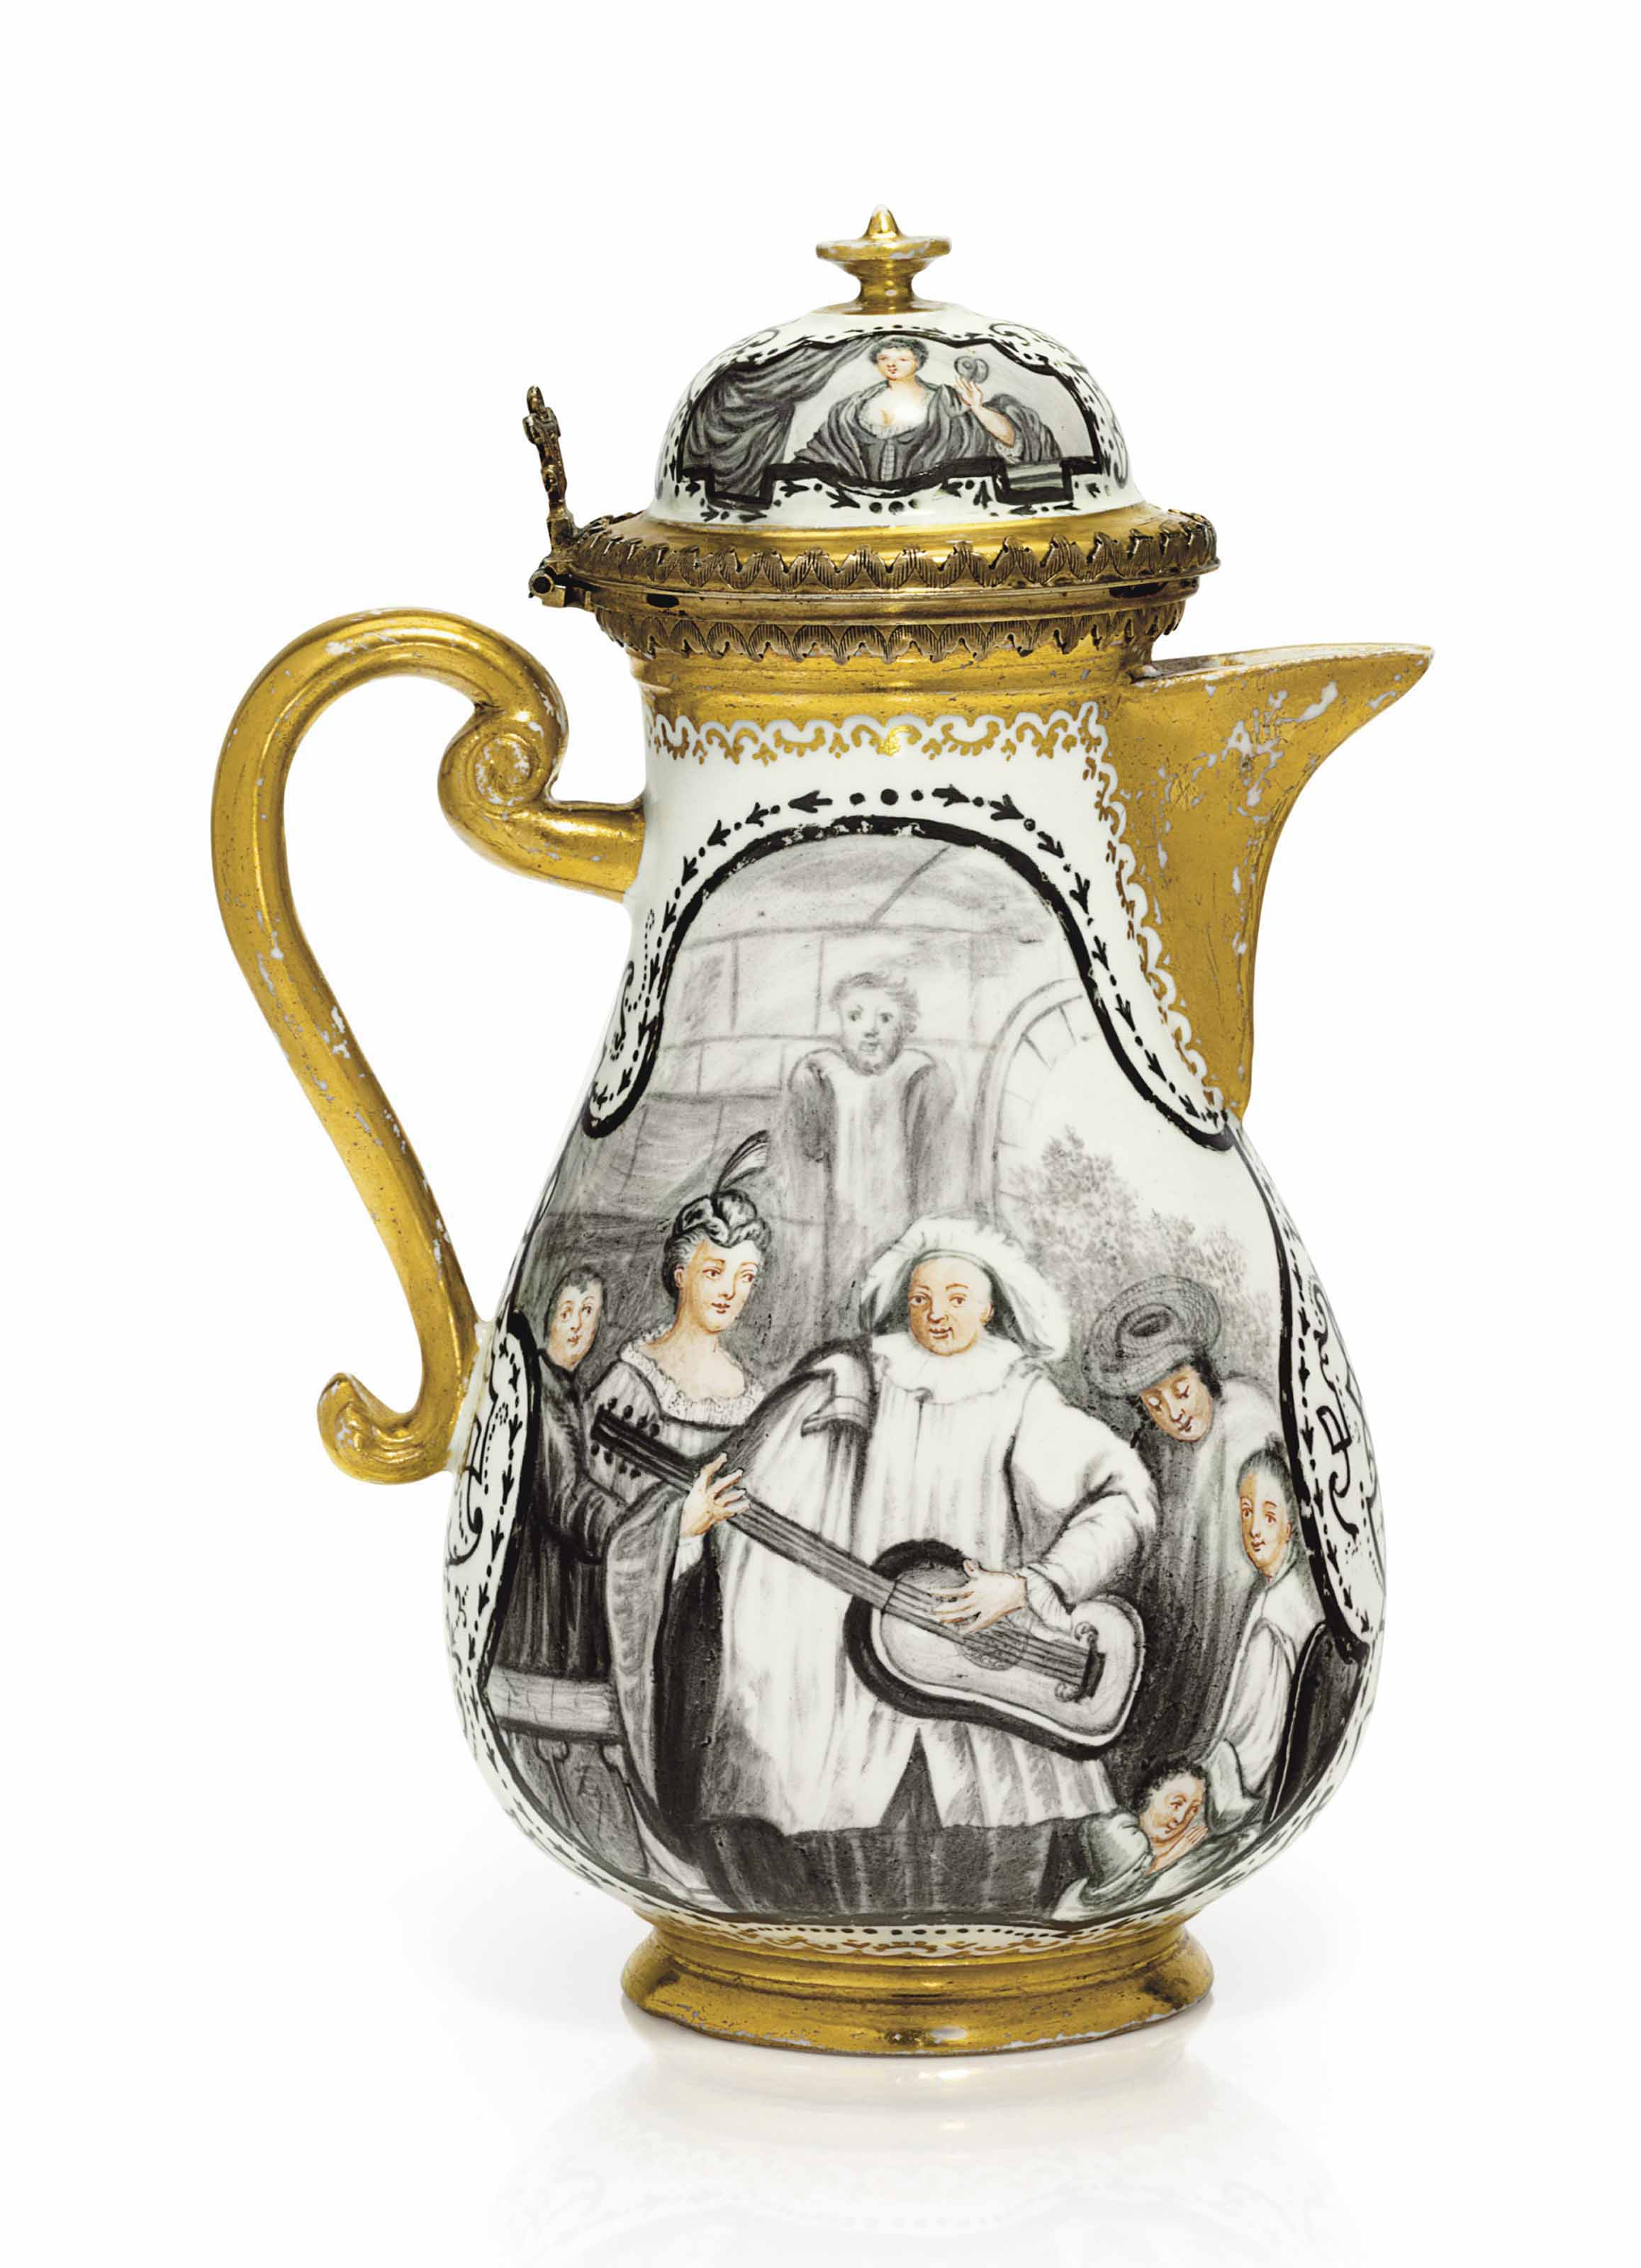 A SILVER-GILT MOUNTED BÖTTGER PORCELAIN HAUSMALEREI COFFEE-POT AND COVER